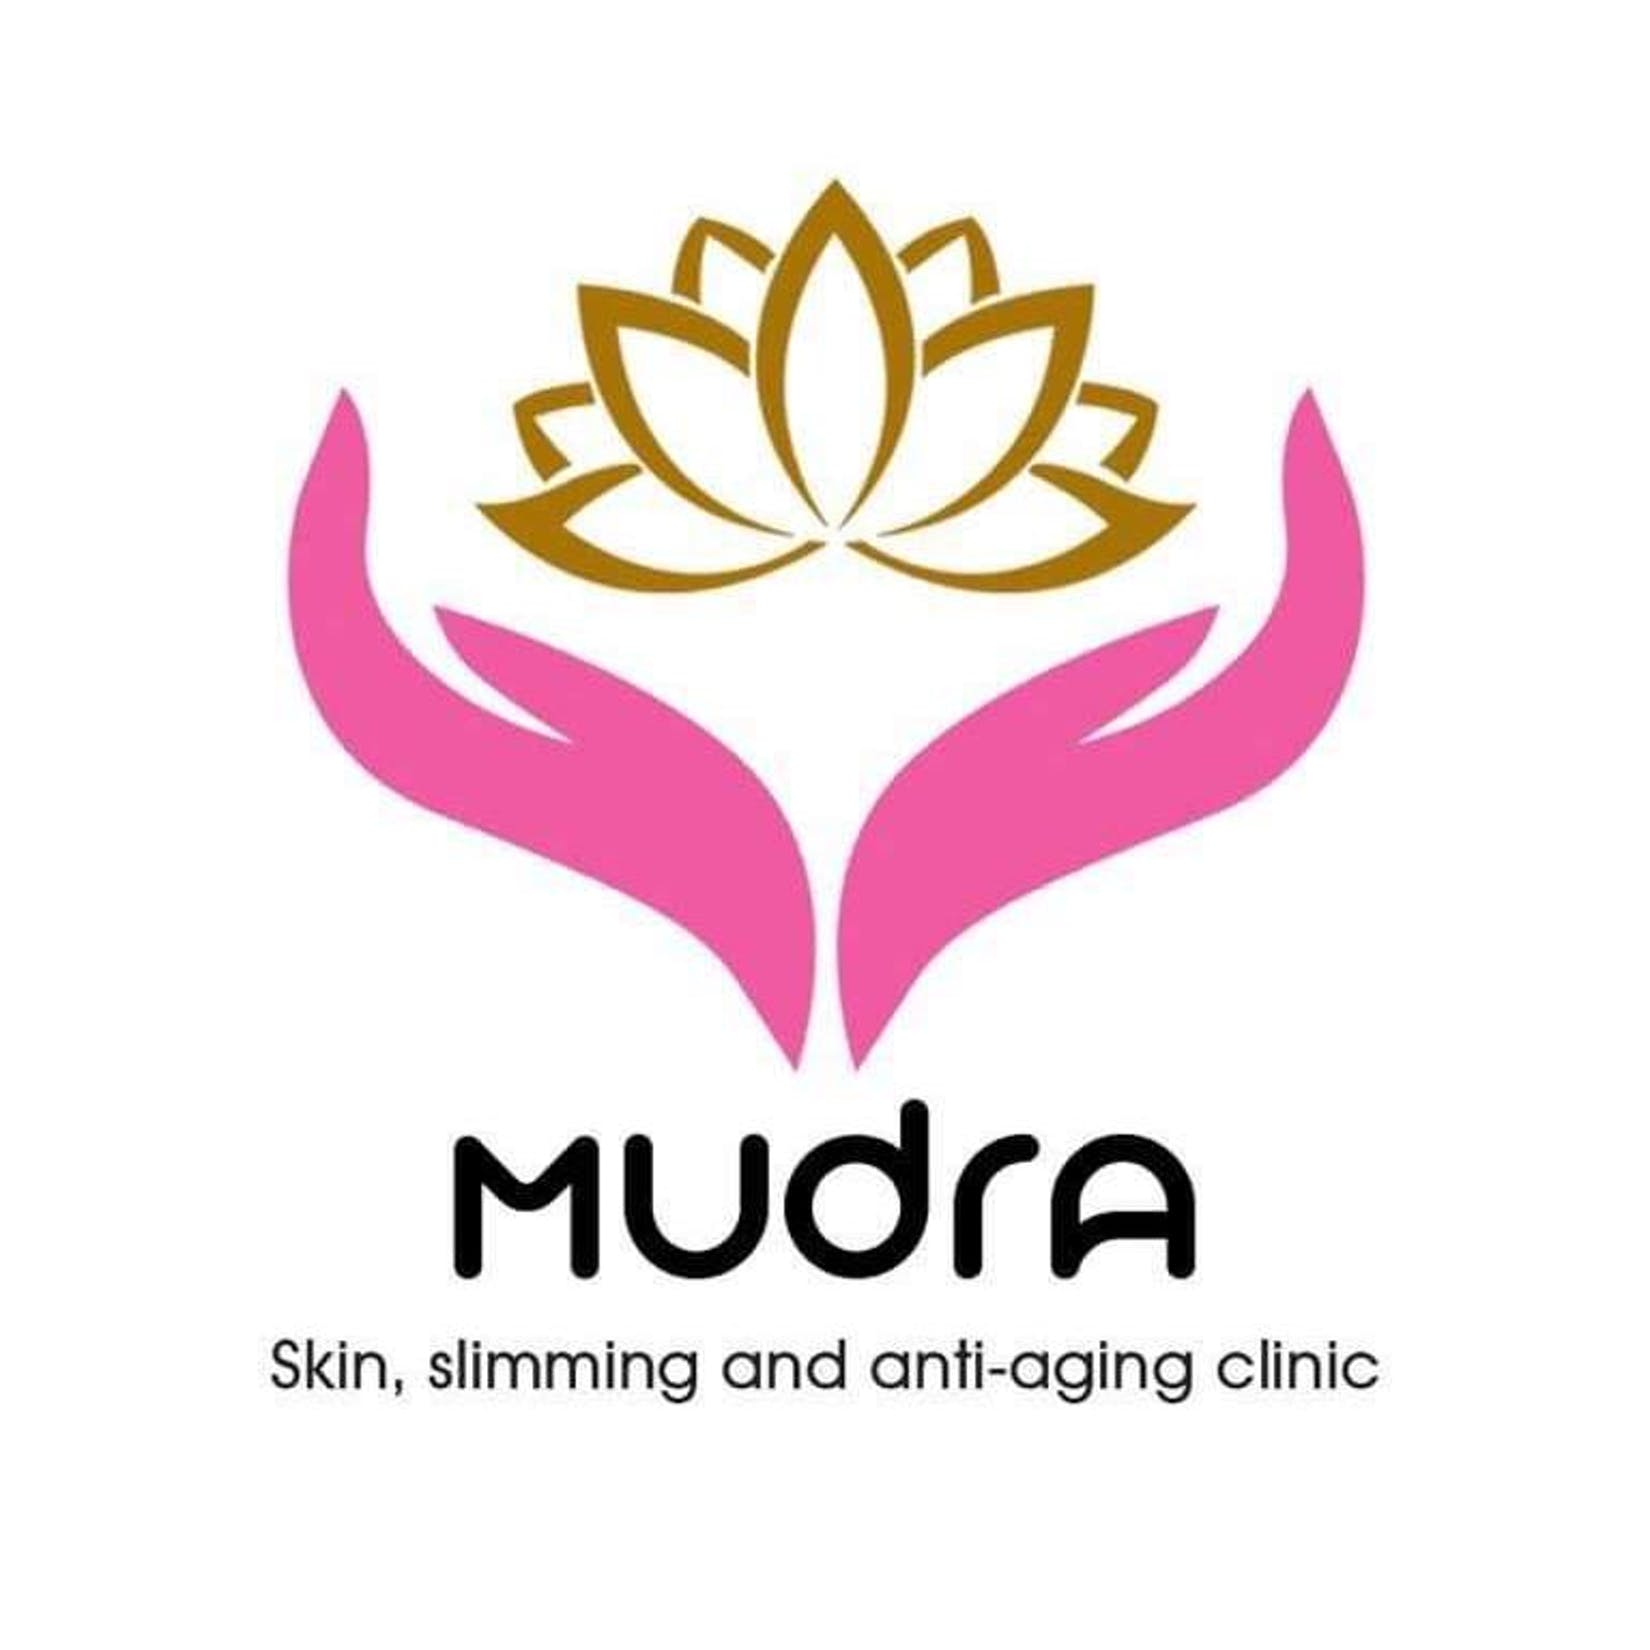 MUDRA Skin, Slimming & Anti-aging Clinic | Beauty